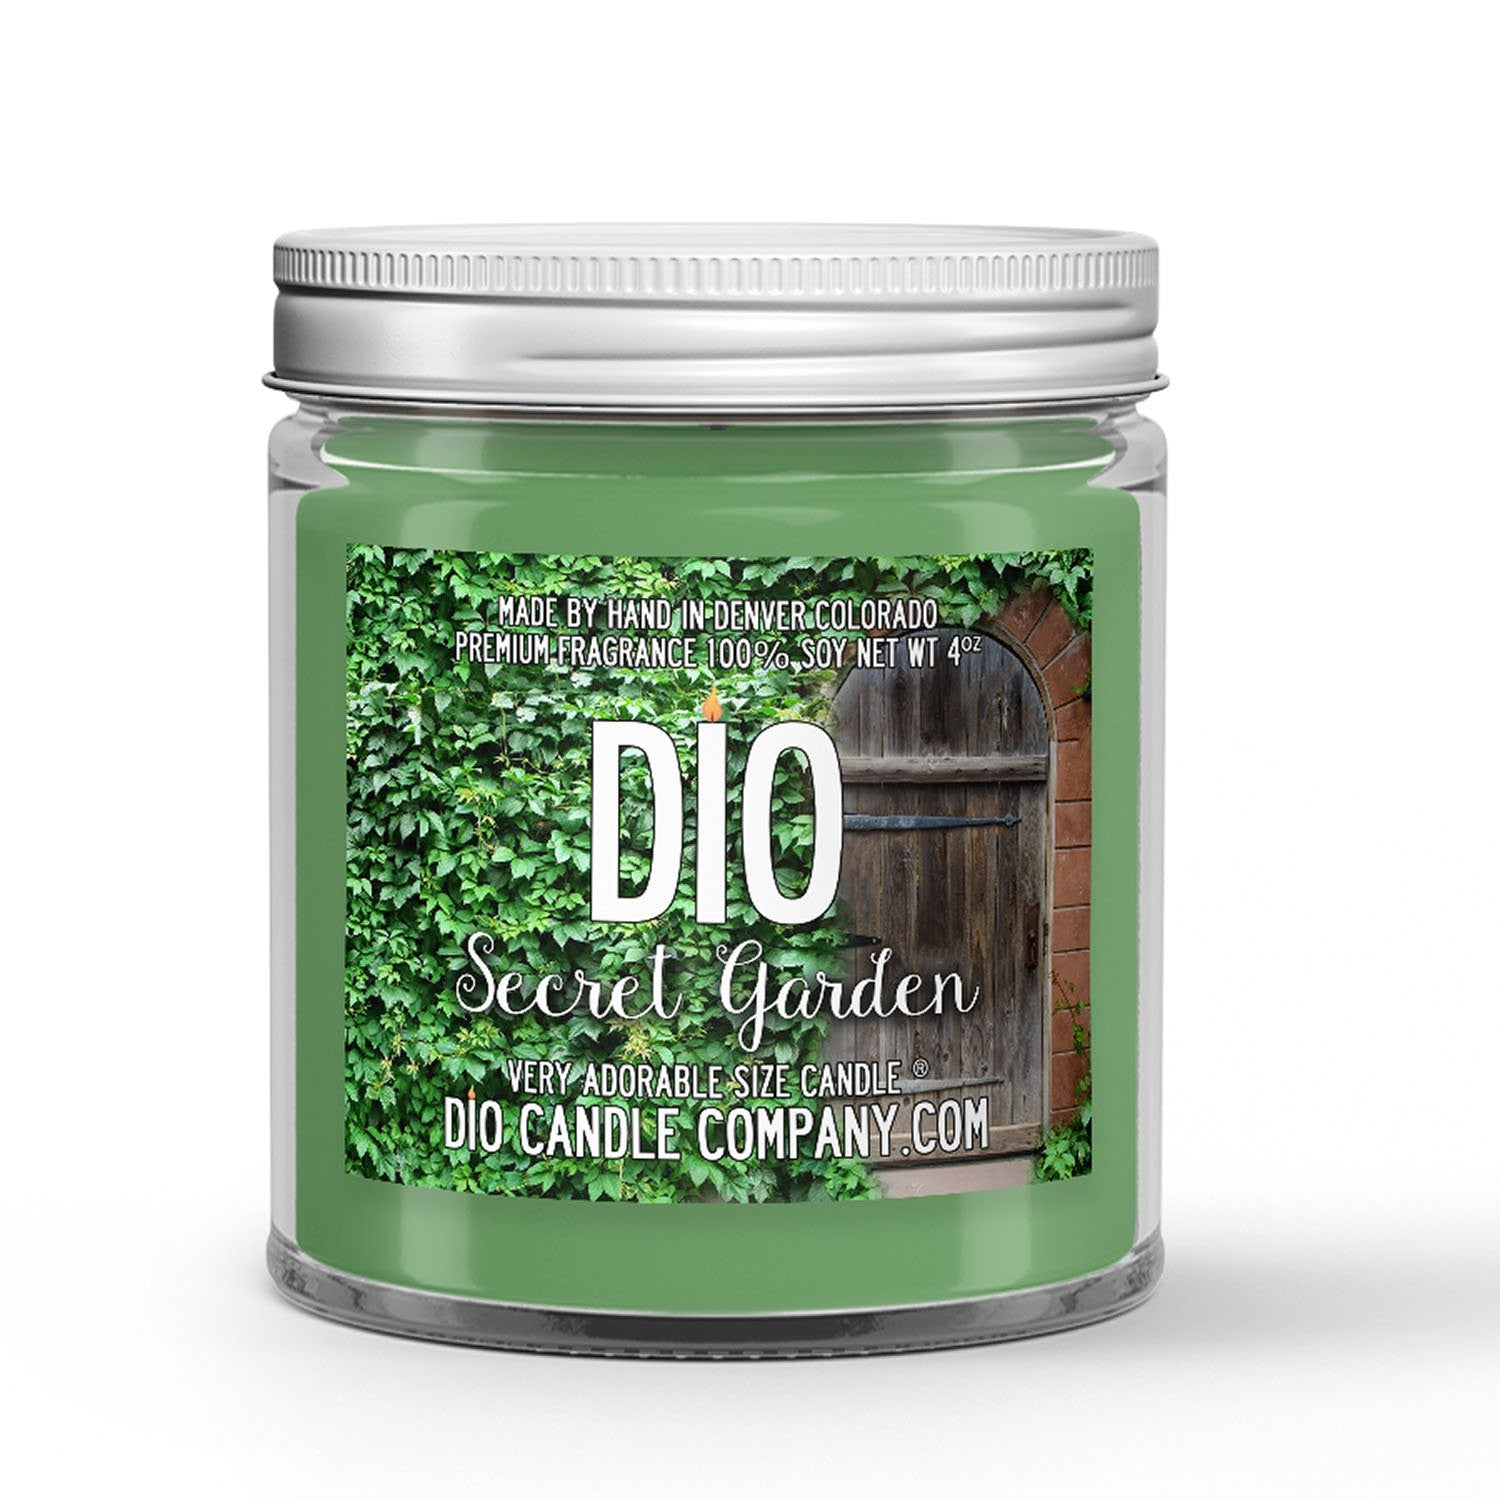 Garden Secret Candle - Green Foliage - Flowers - Rain - 4oz Very Adorable Size Candle® - Dio Candle Company